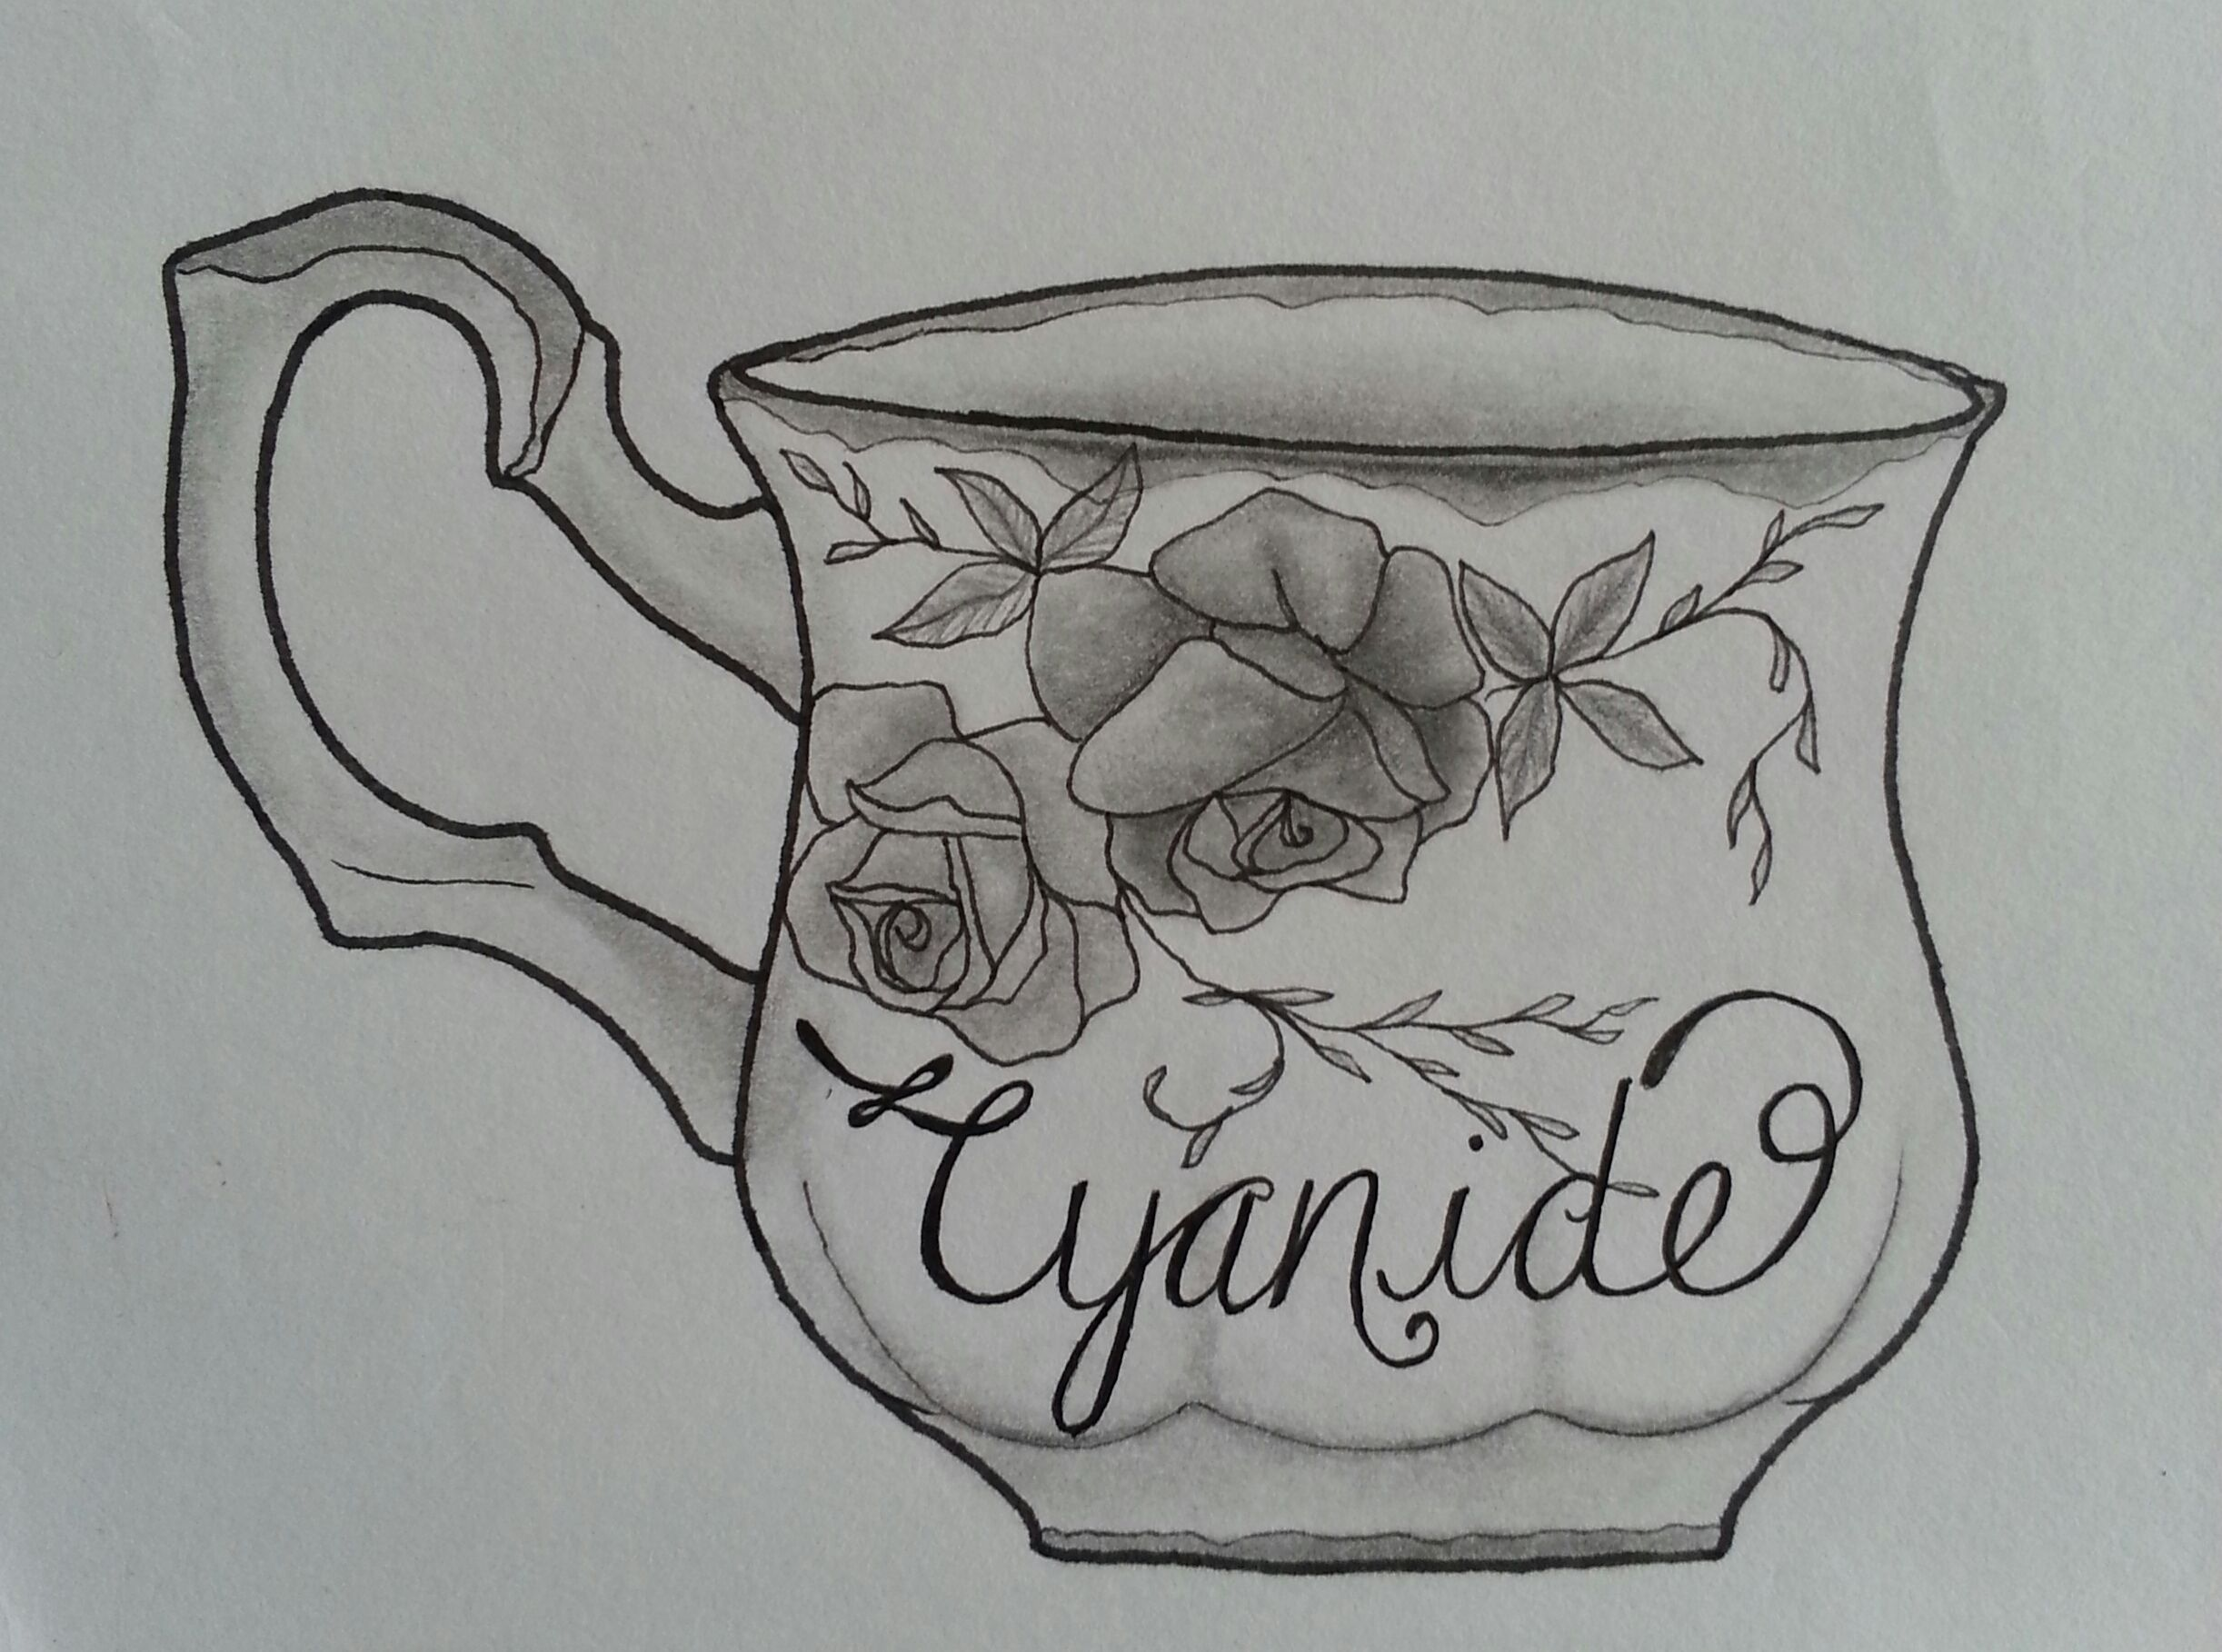 and a cute little cup of cyanide tattoo style drawing inspired by the biffy clyro song. Black Bedroom Furniture Sets. Home Design Ideas